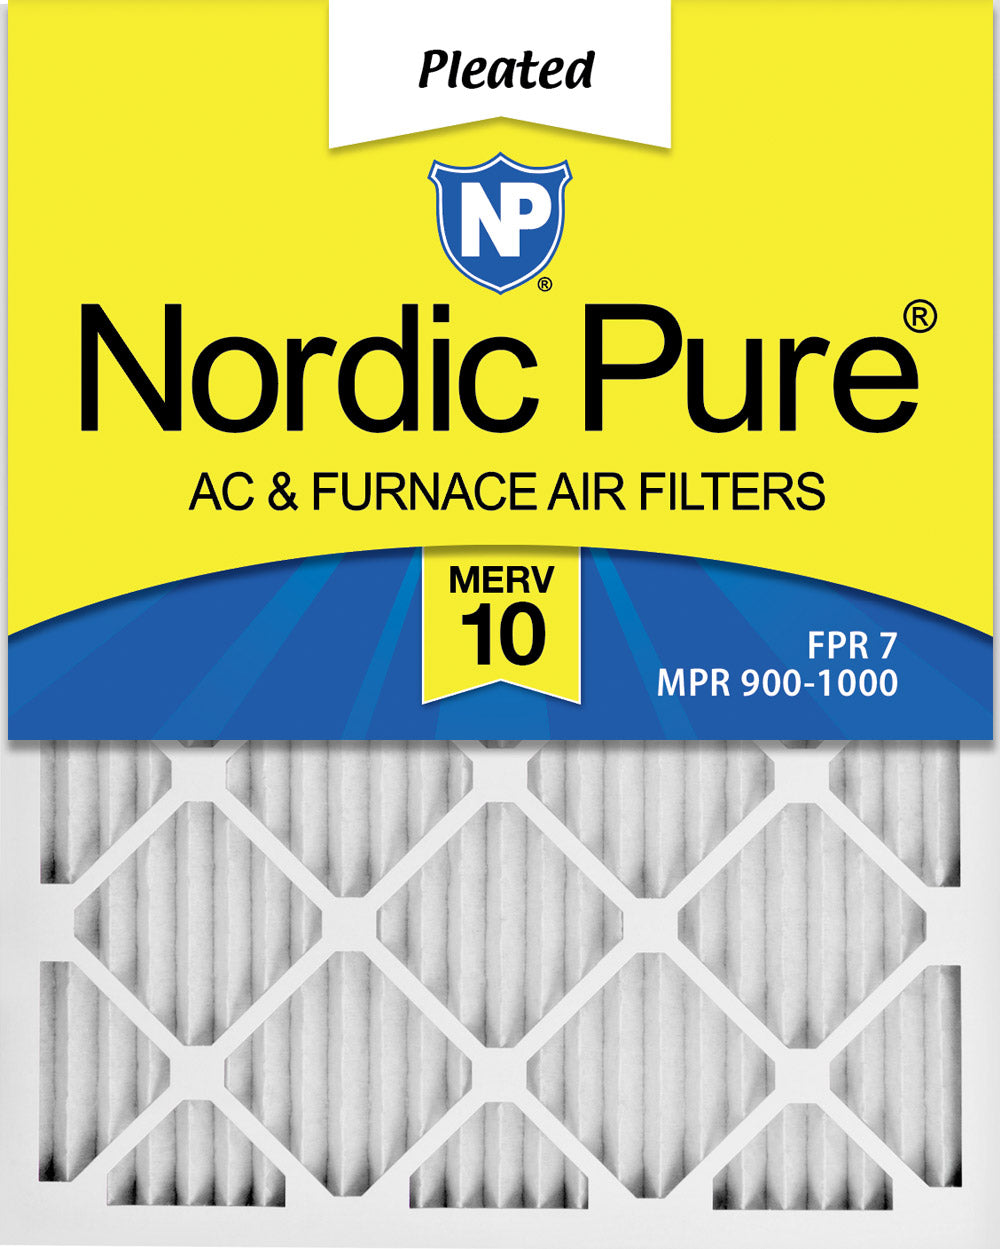 20x25x1 Pleated MERV 10 Air Filters 6 Pack